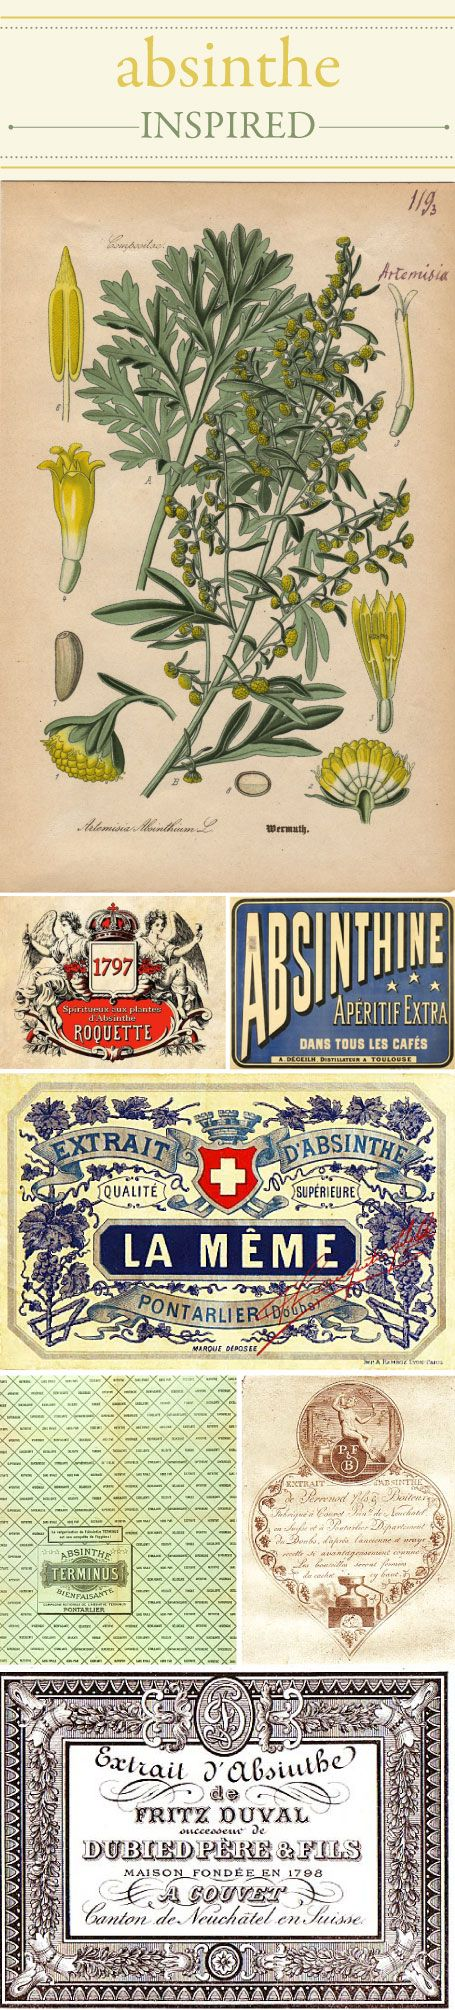 Vintage Absinthe labels  http://www.wileyvalentine.com/blog/2010/08/25/absinthe-inspired-the-green-fairy/#Green Fairies, Absinthe Poster, Absinthe Labels, Absinthe Inspiration, Design Hoodie, Label Design, Vintage Absinthe, L Absinthe, Labels Design